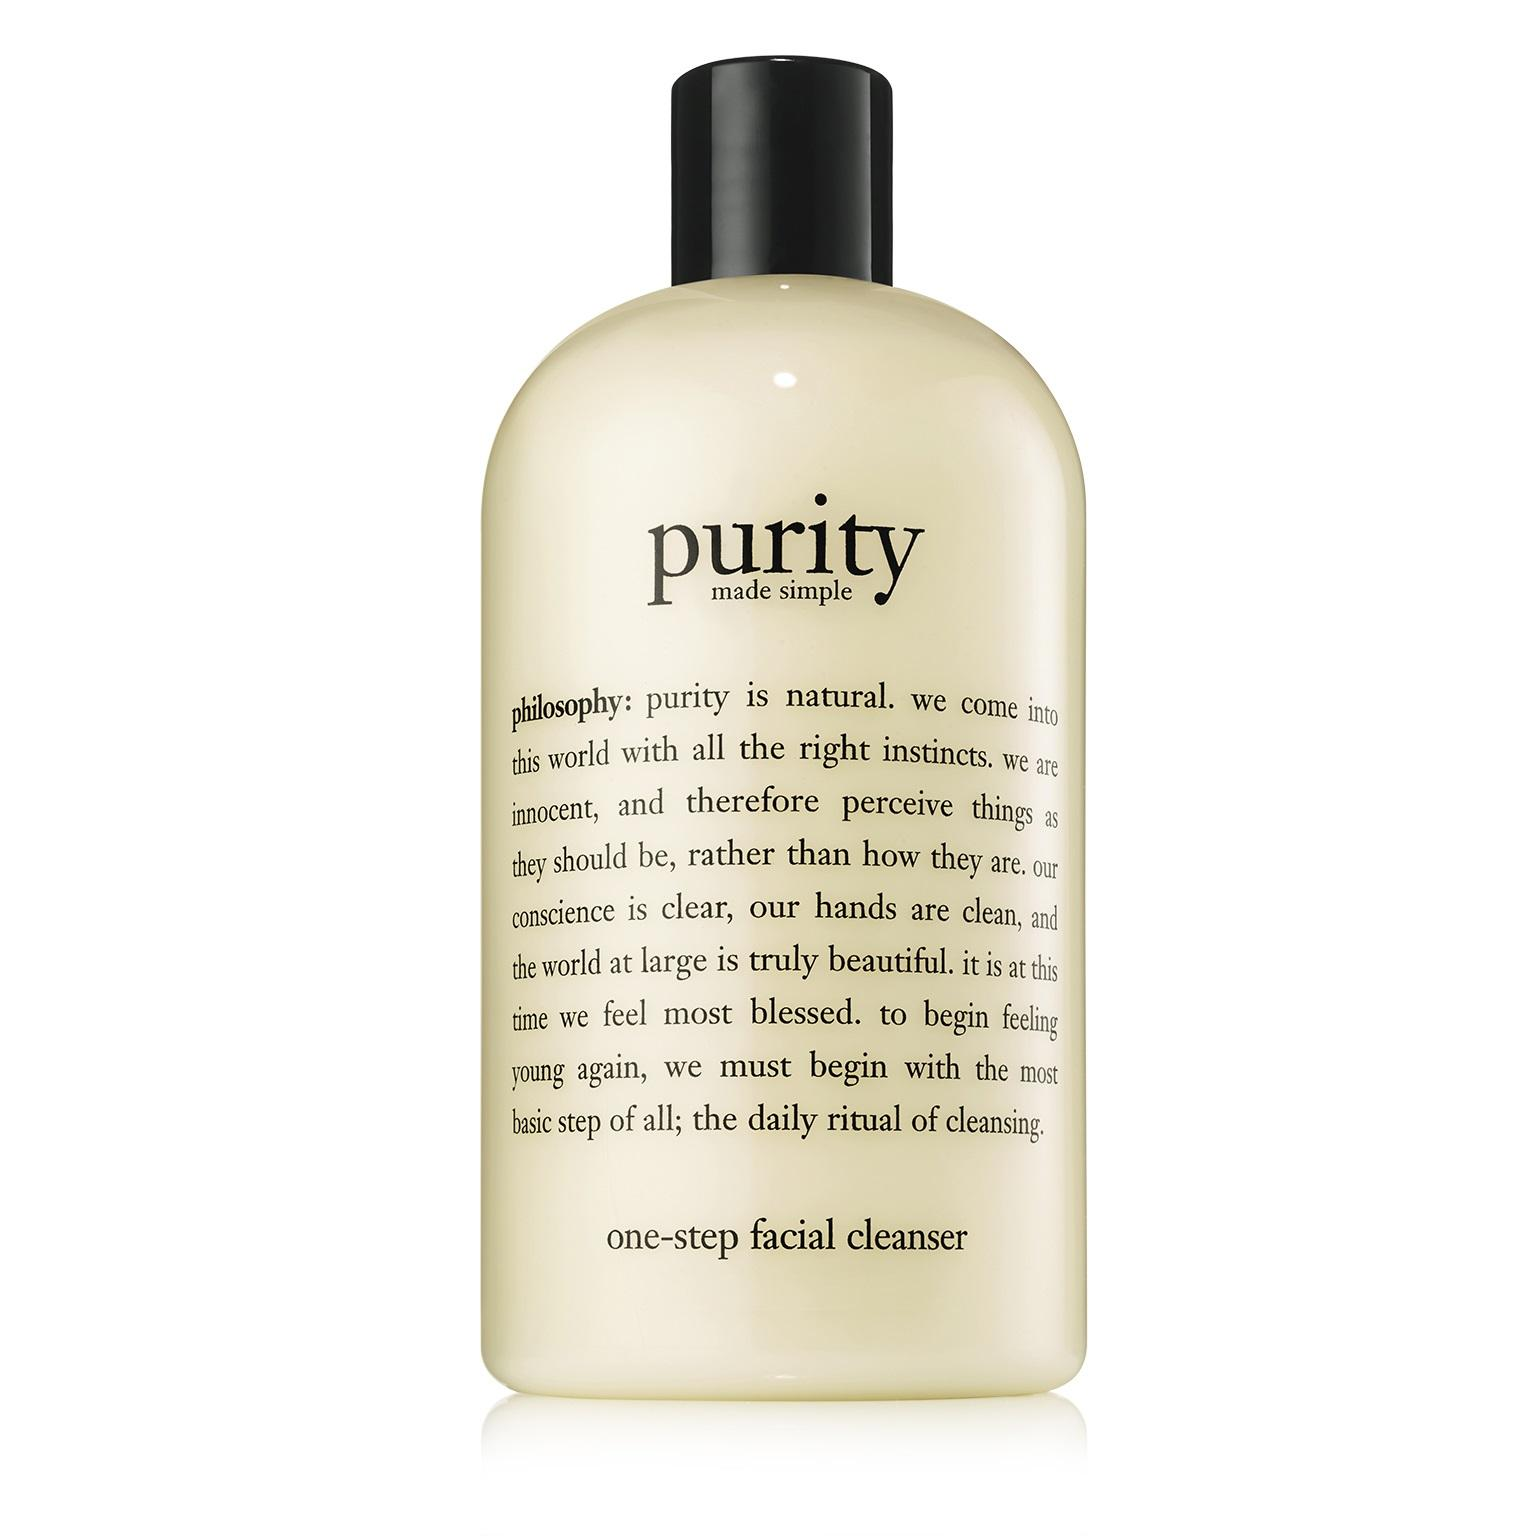 Sữa rửa mặt Philosophy Purity Made Simple 240ml tốt nhất